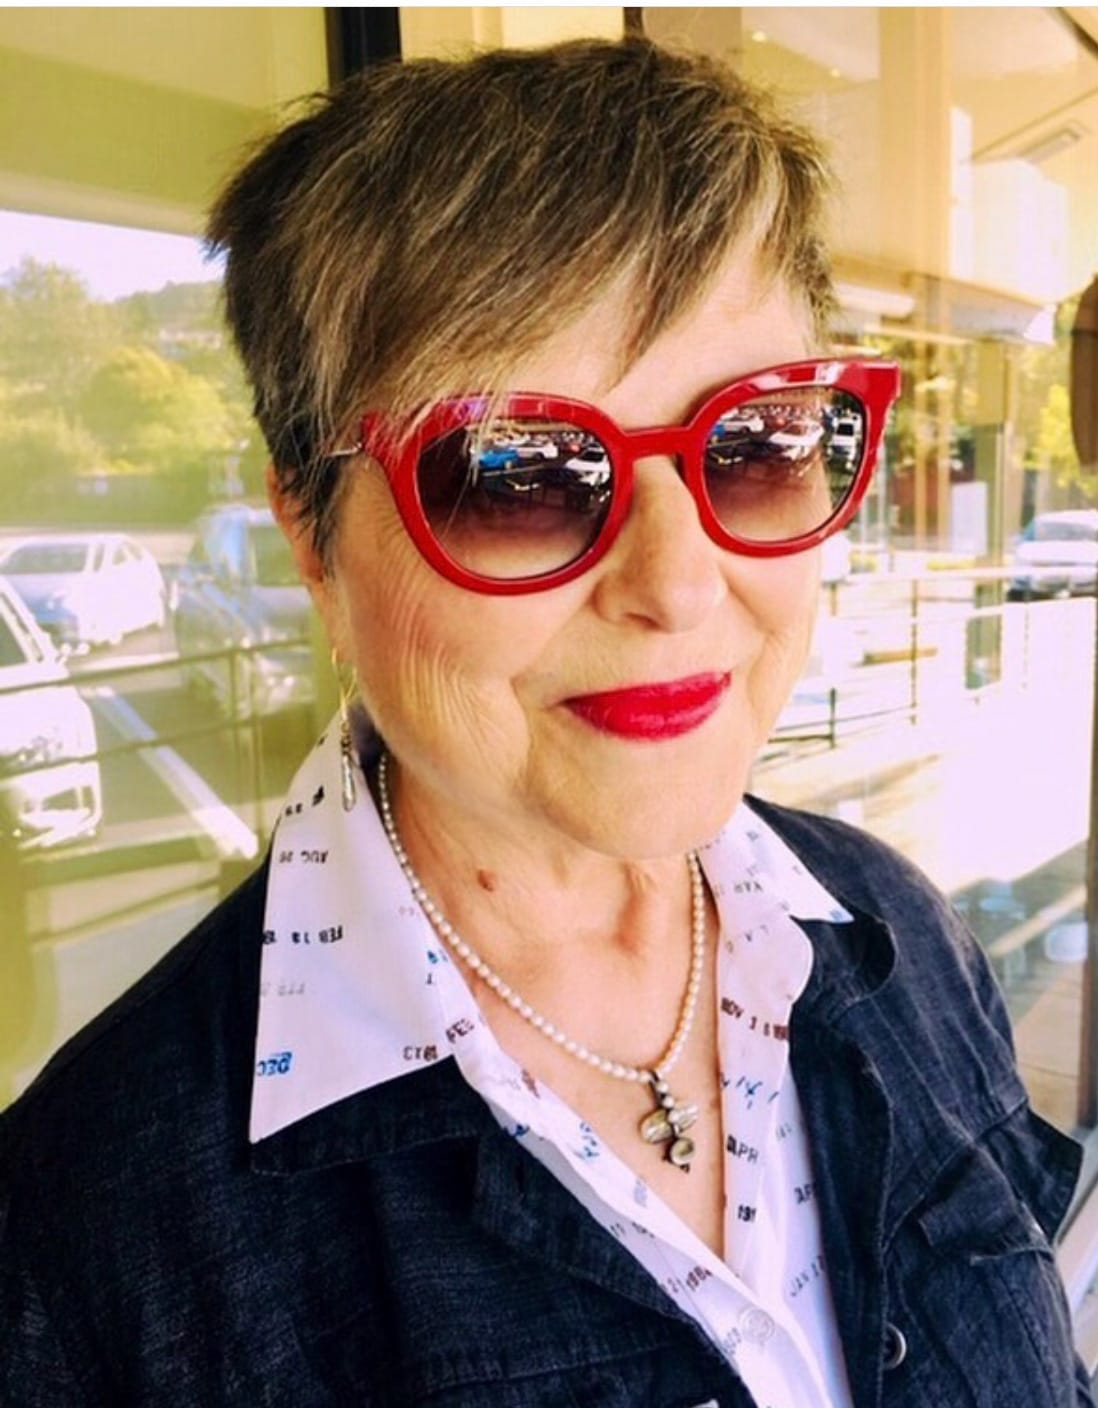 Image Consultant Brenda Kinsel with red lip and glasses